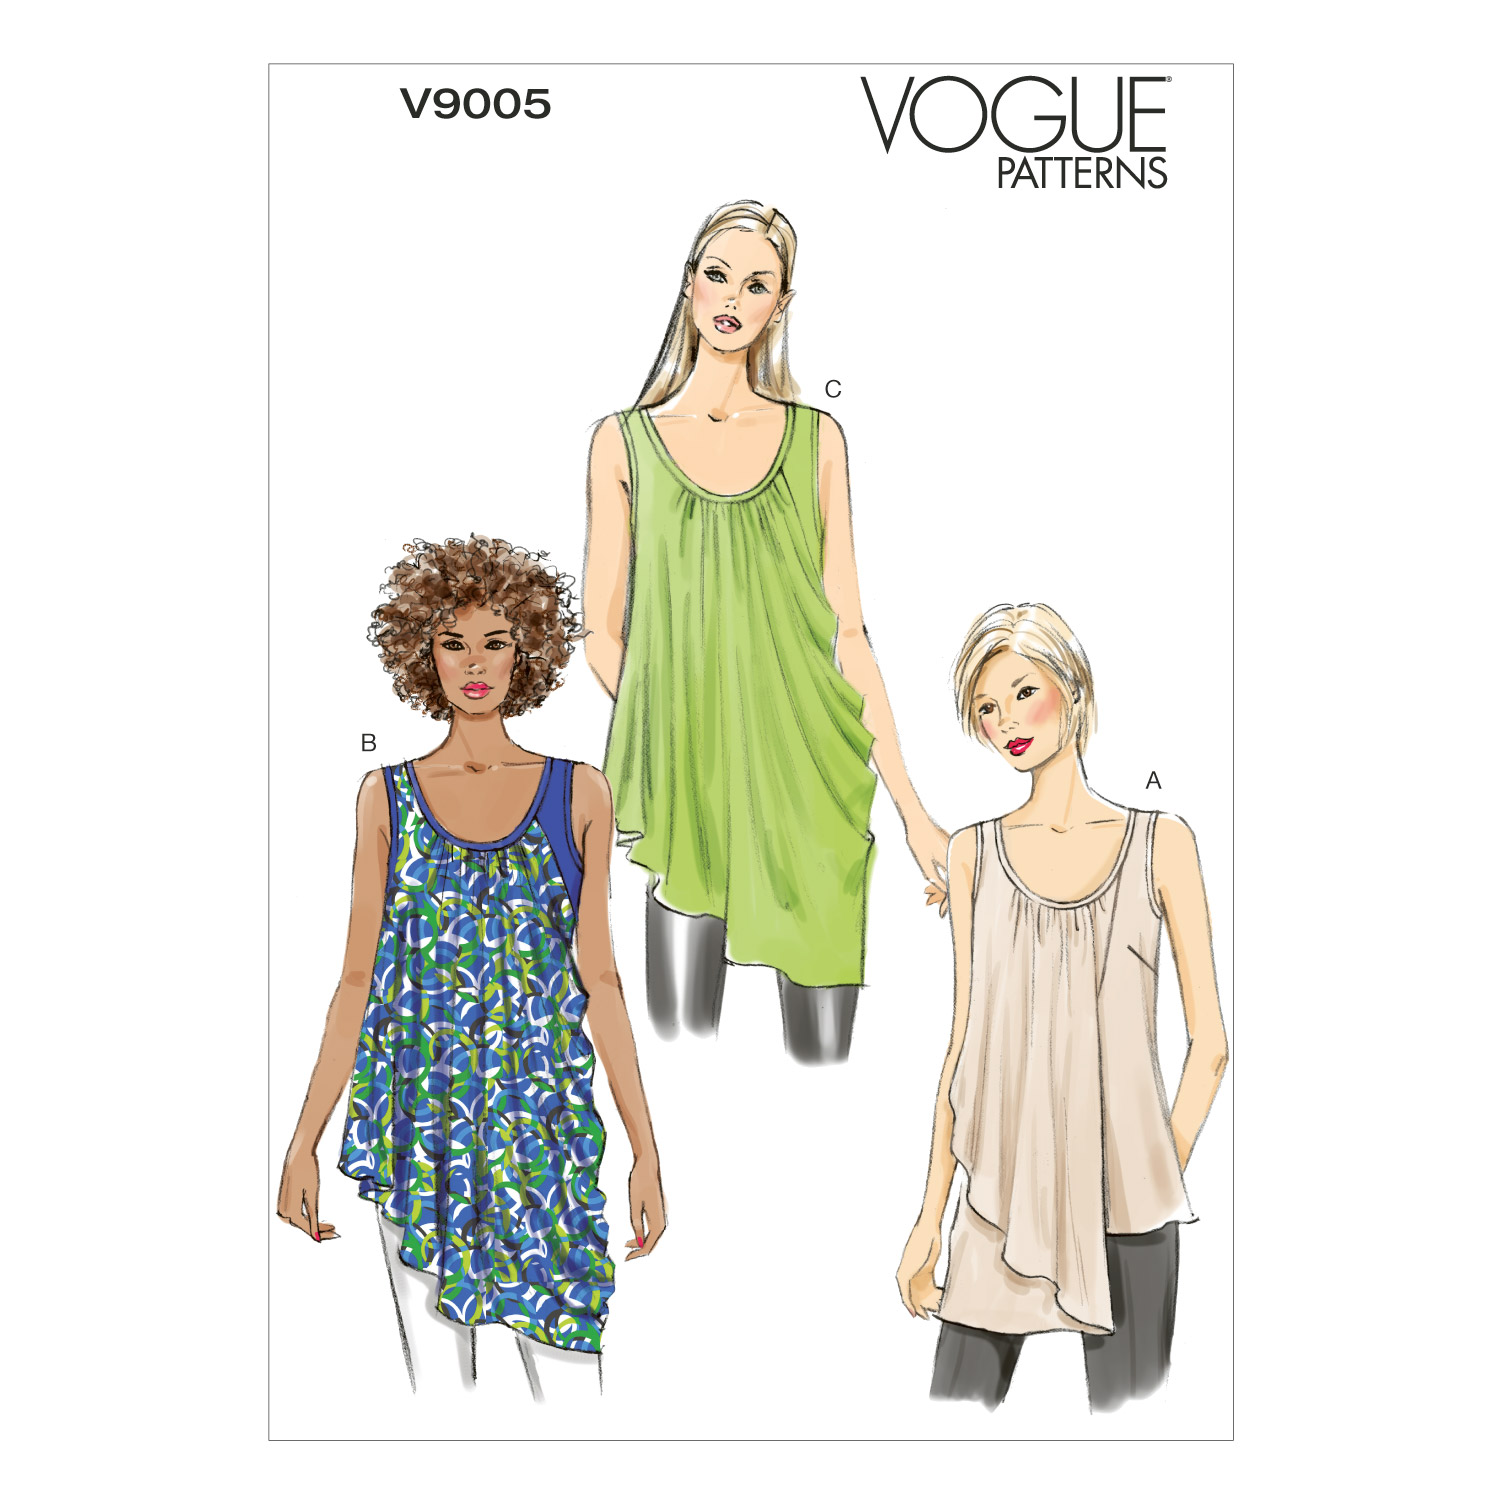 Vogue Patterns Misses Top-V9005